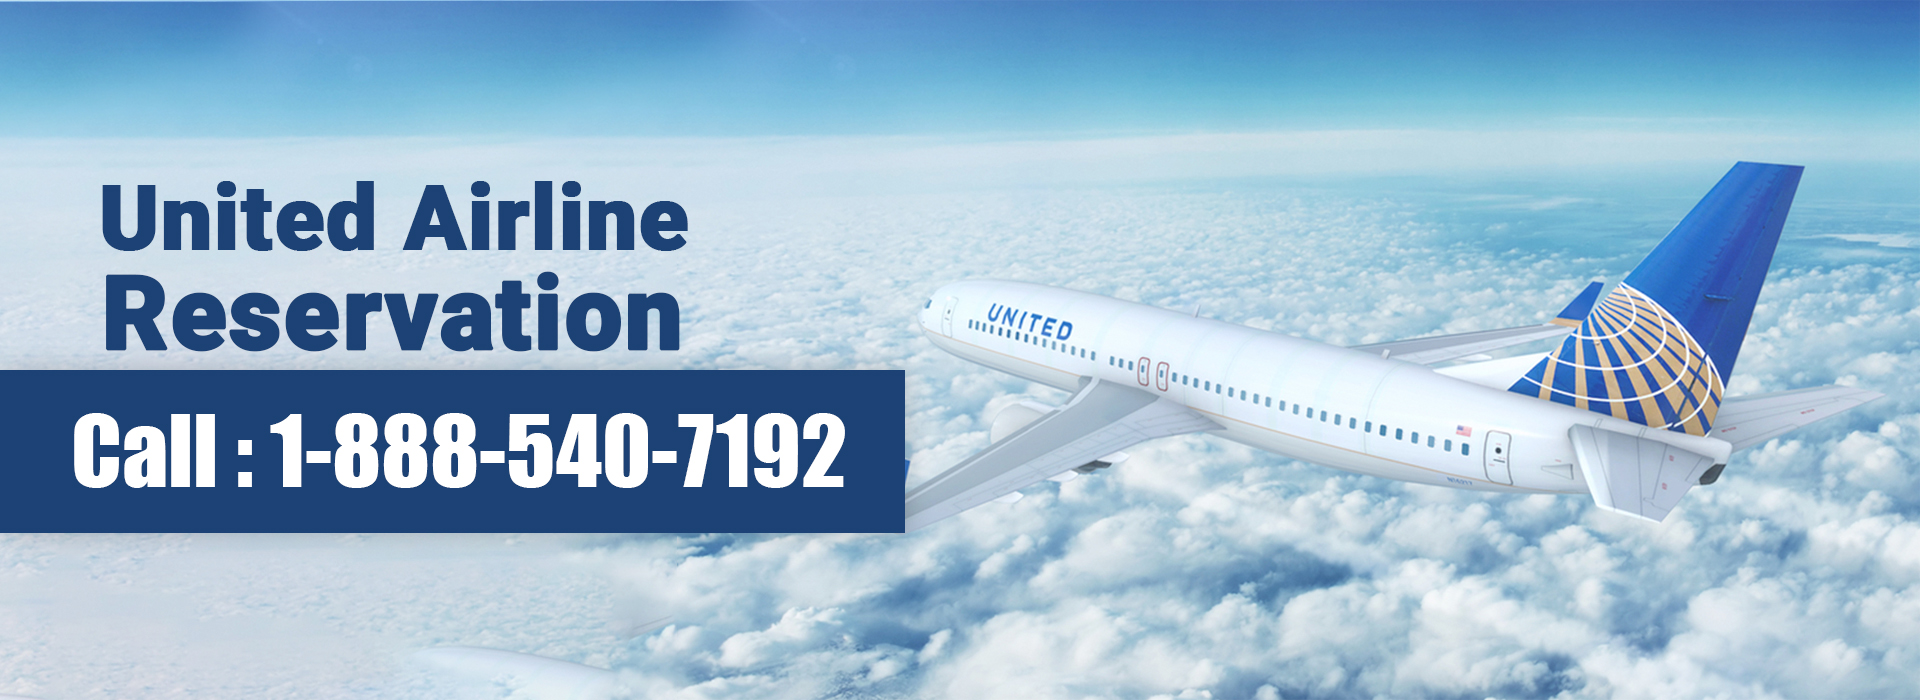 United Airline Reservation 1-888-540-7192